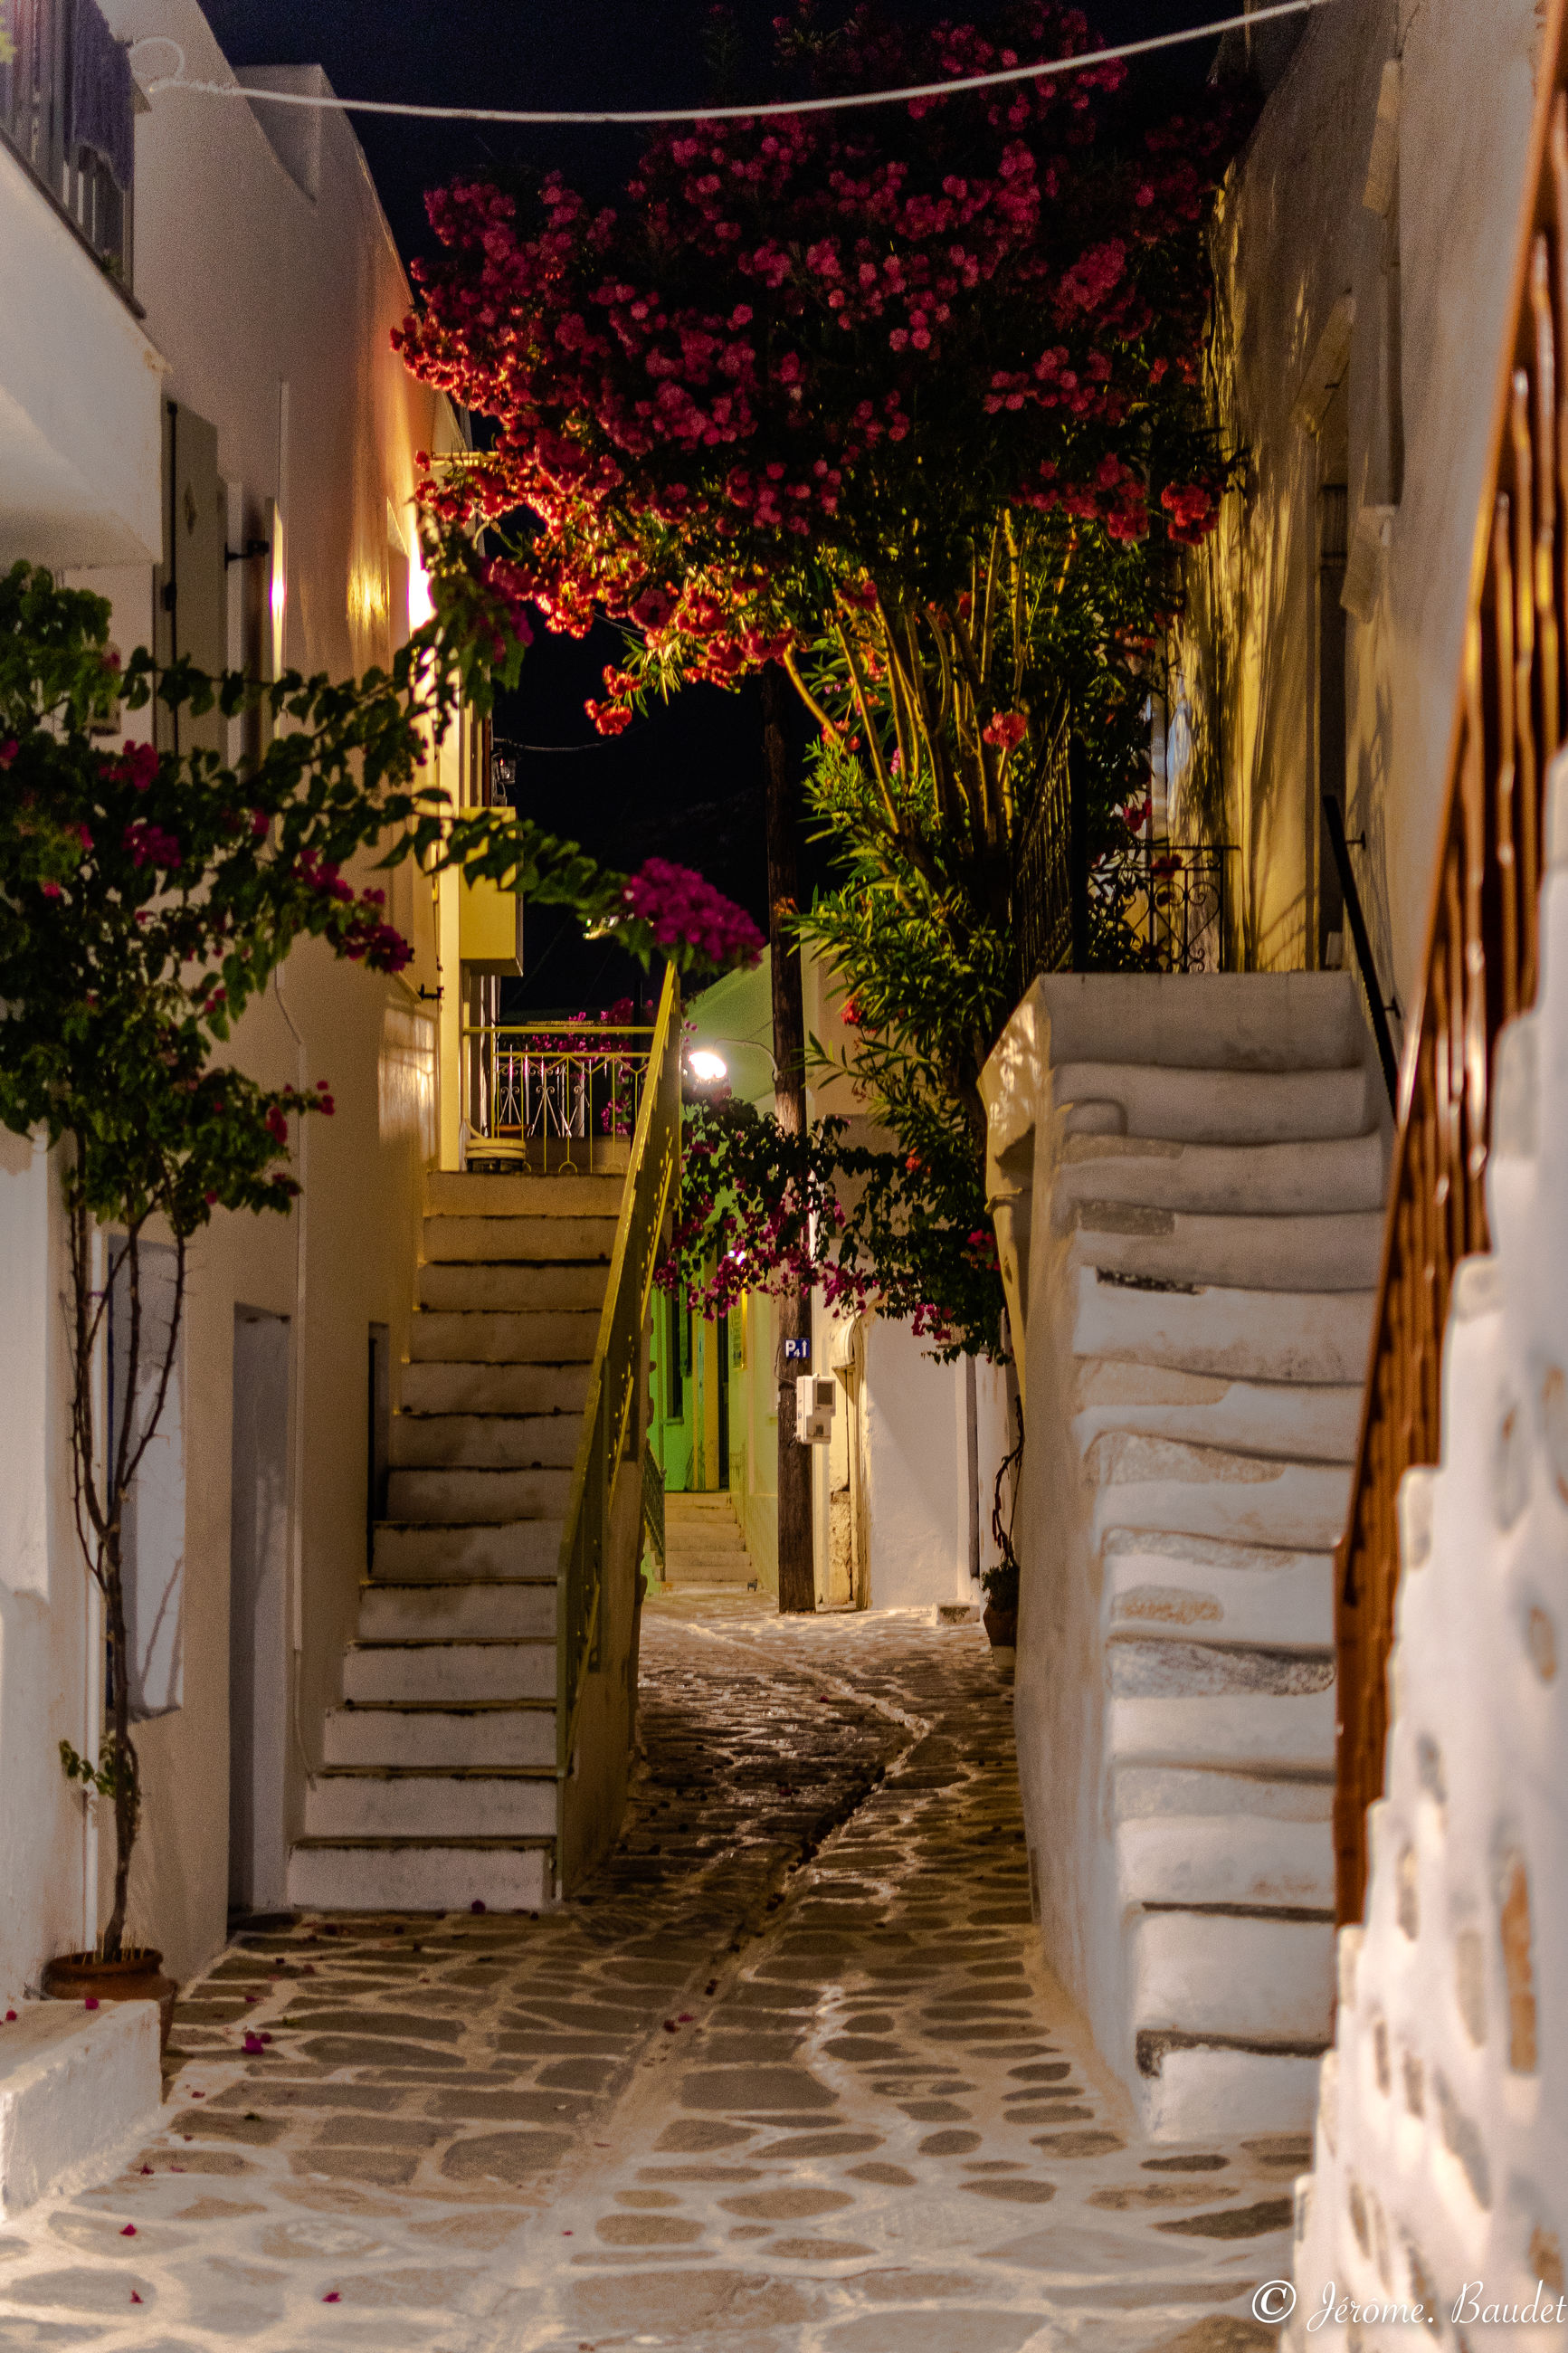 architecture, plant, built structure, building exterior, building, nature, staircase, illuminated, no people, night, tree, outdoors, house, flower, potted plant, growth, footpath, flowering plant, steps and staircases, residential district, flower pot, luxury, alley